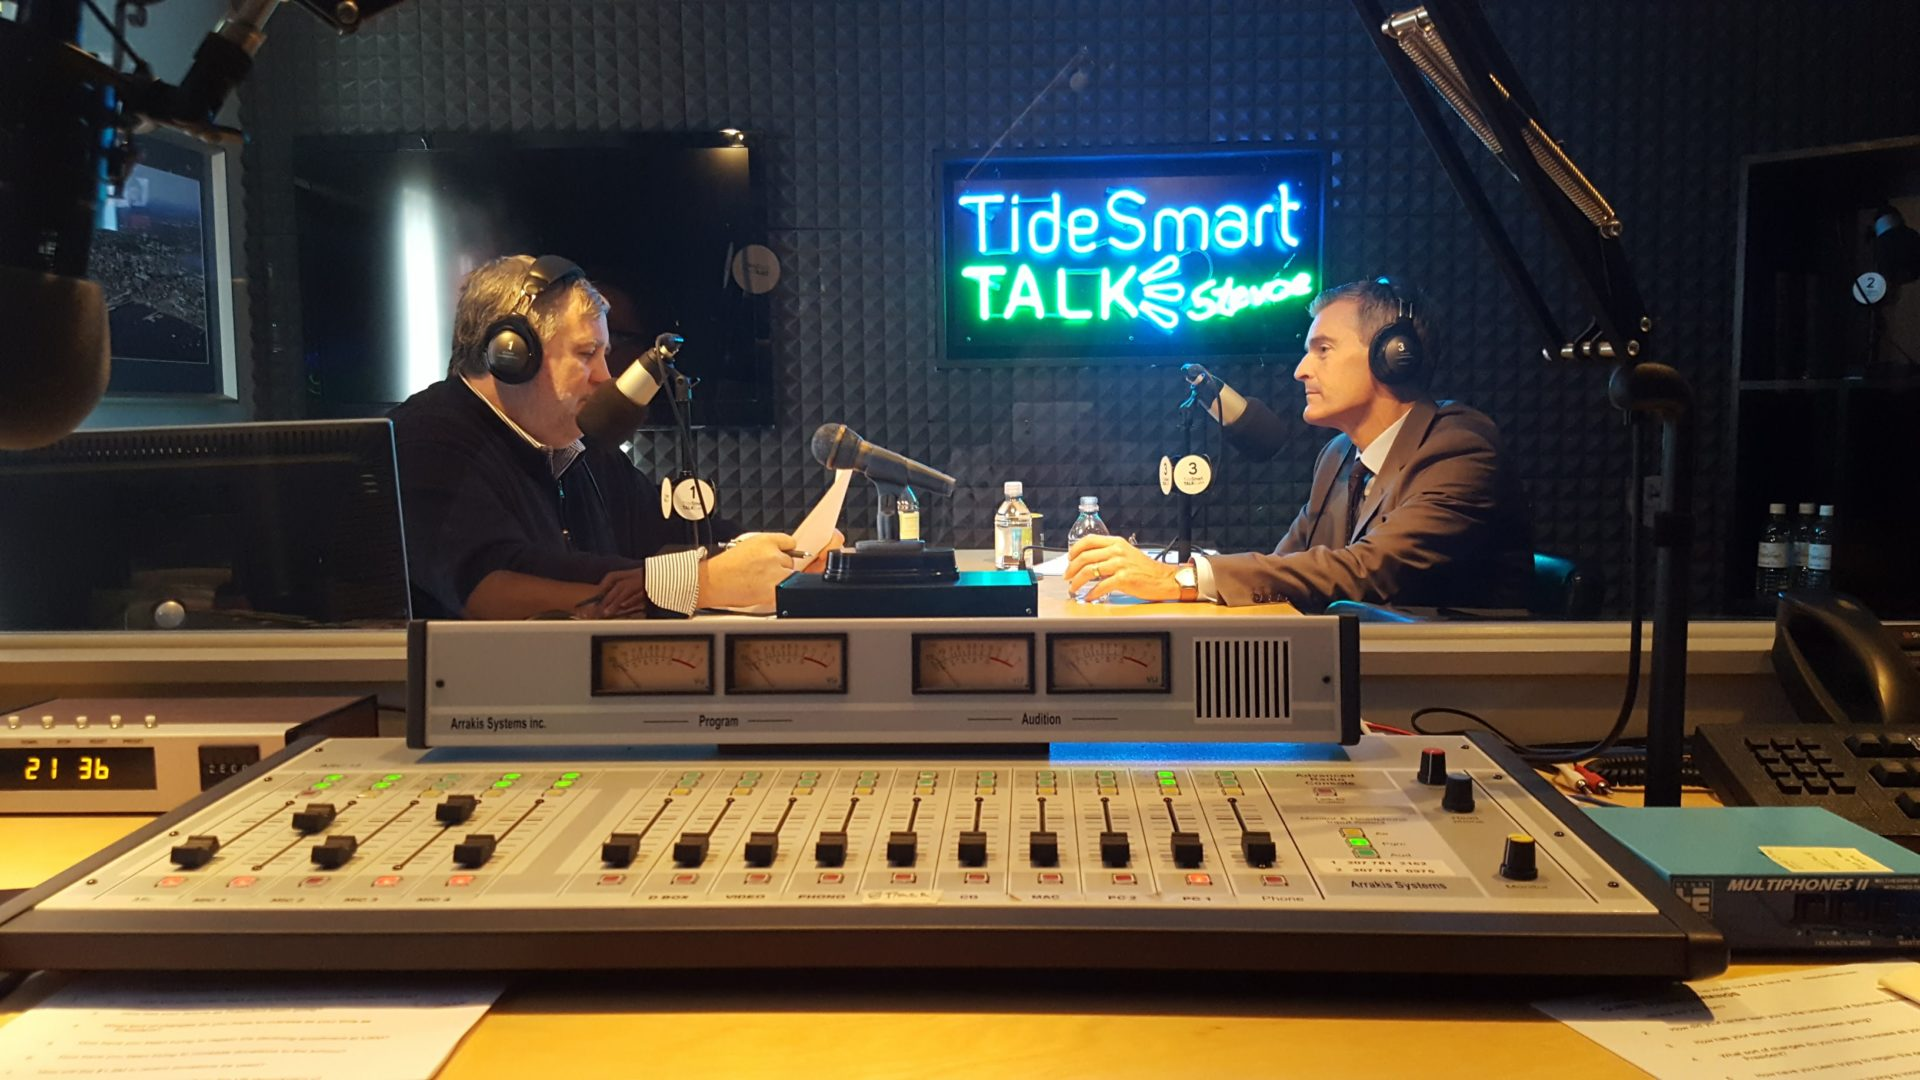 Host of TideSmart Talk with Stevoe, Steve Woods, welcomed President of the University of Southern Maine, Dr. Glenn Cummings  (at right).